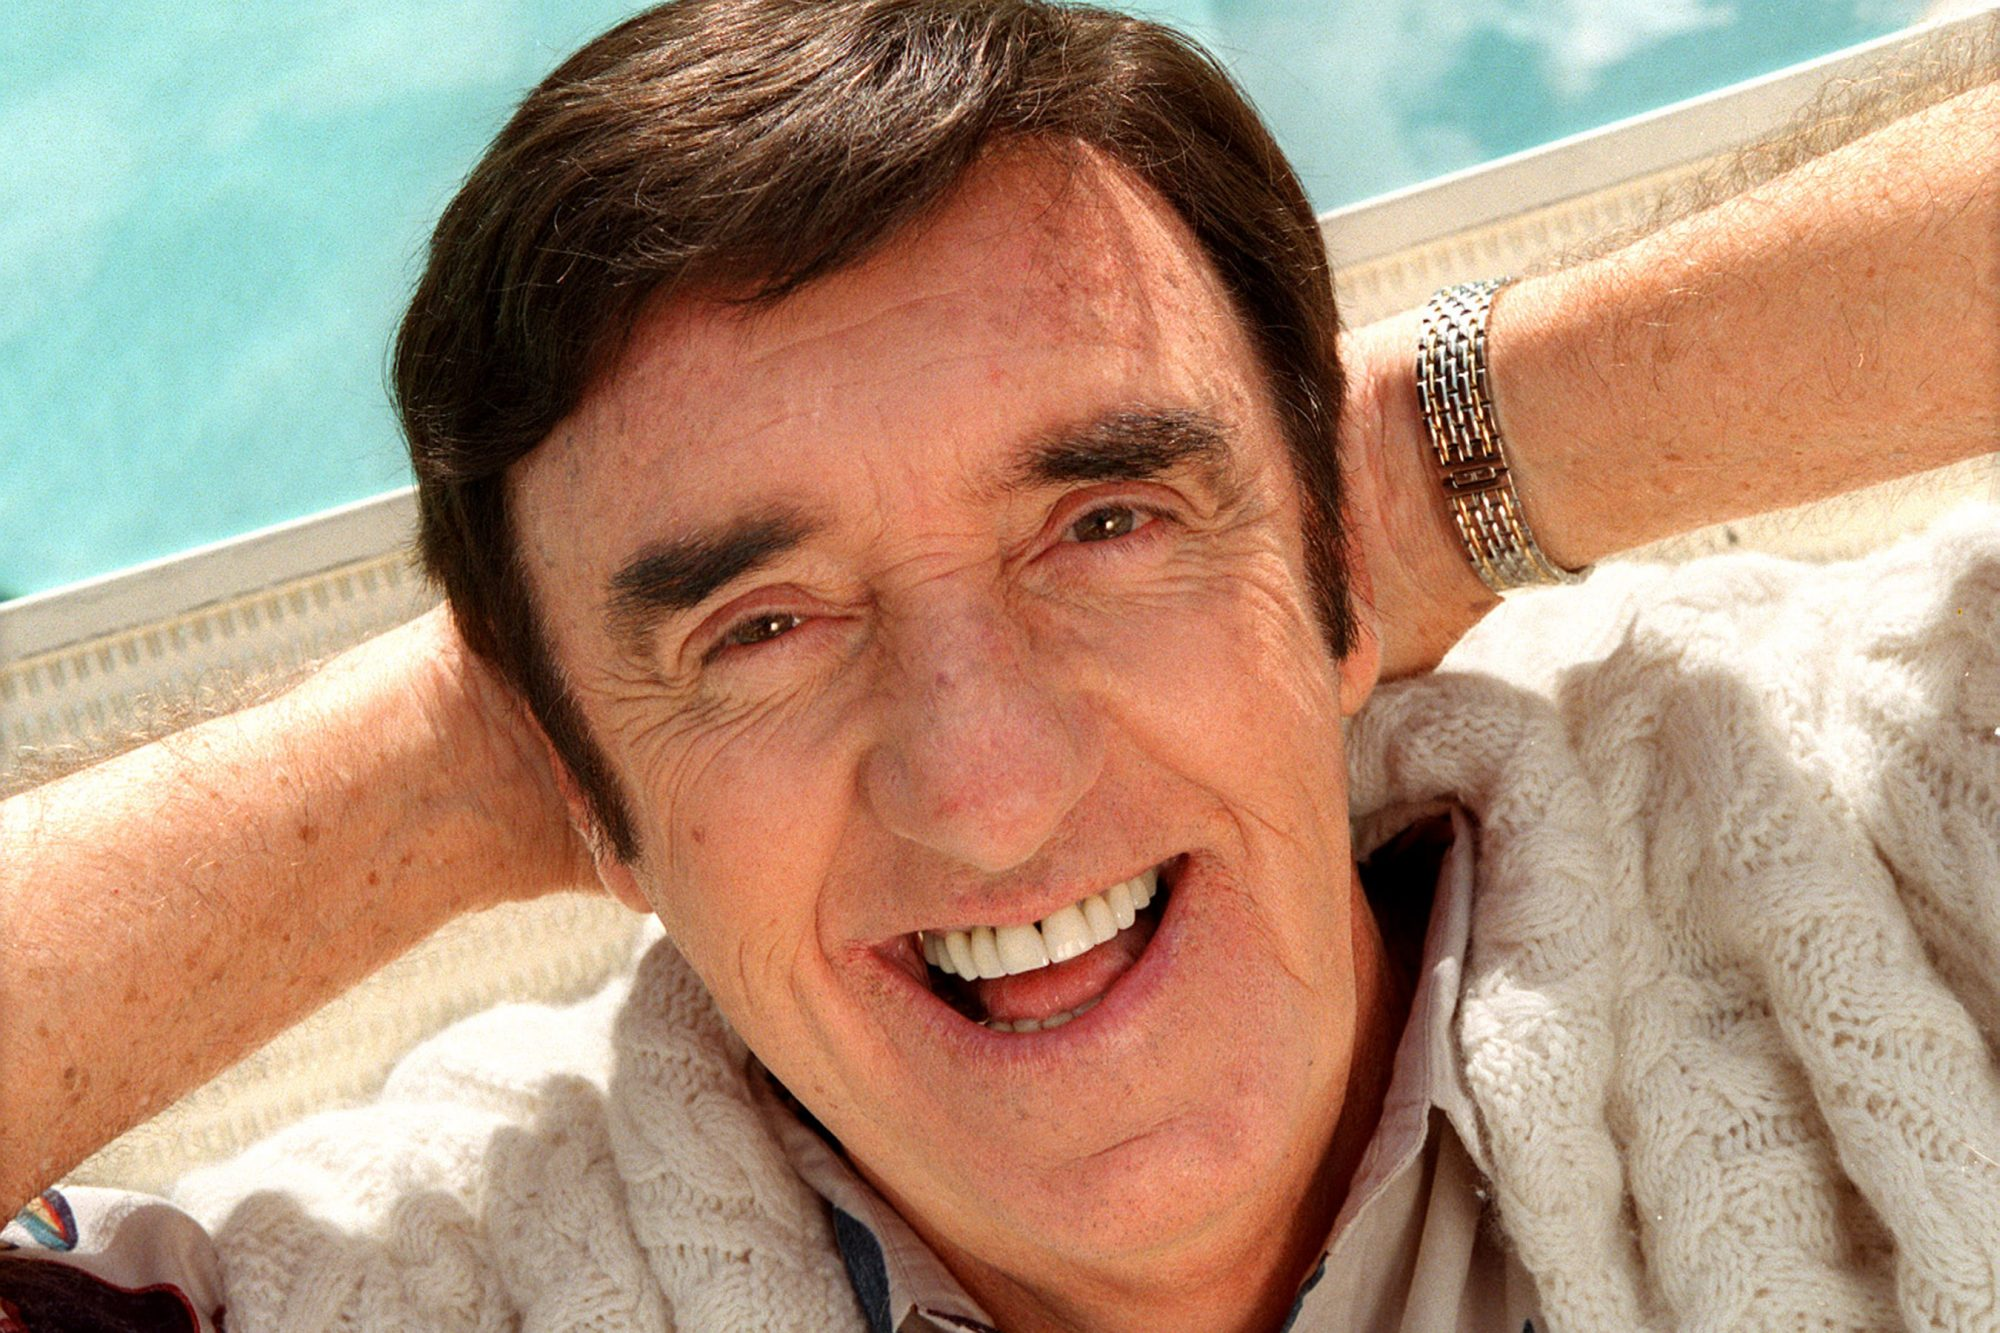 JIM NABORS, The former Gomer Pyle star is doing a publicity blitz after a liver transplant. He has a